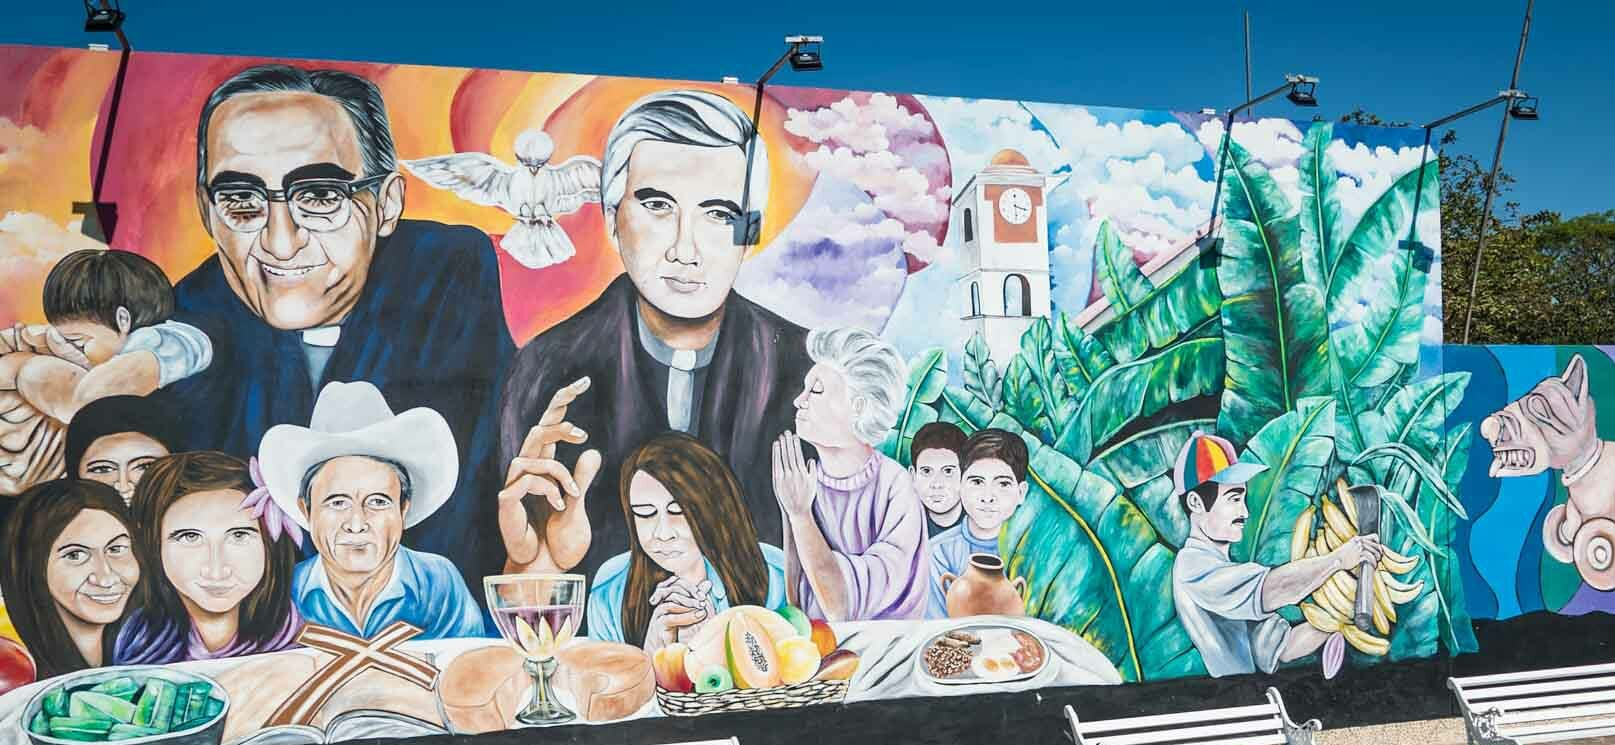 The Salvadoran martyrs: A sign of the Church of Easter